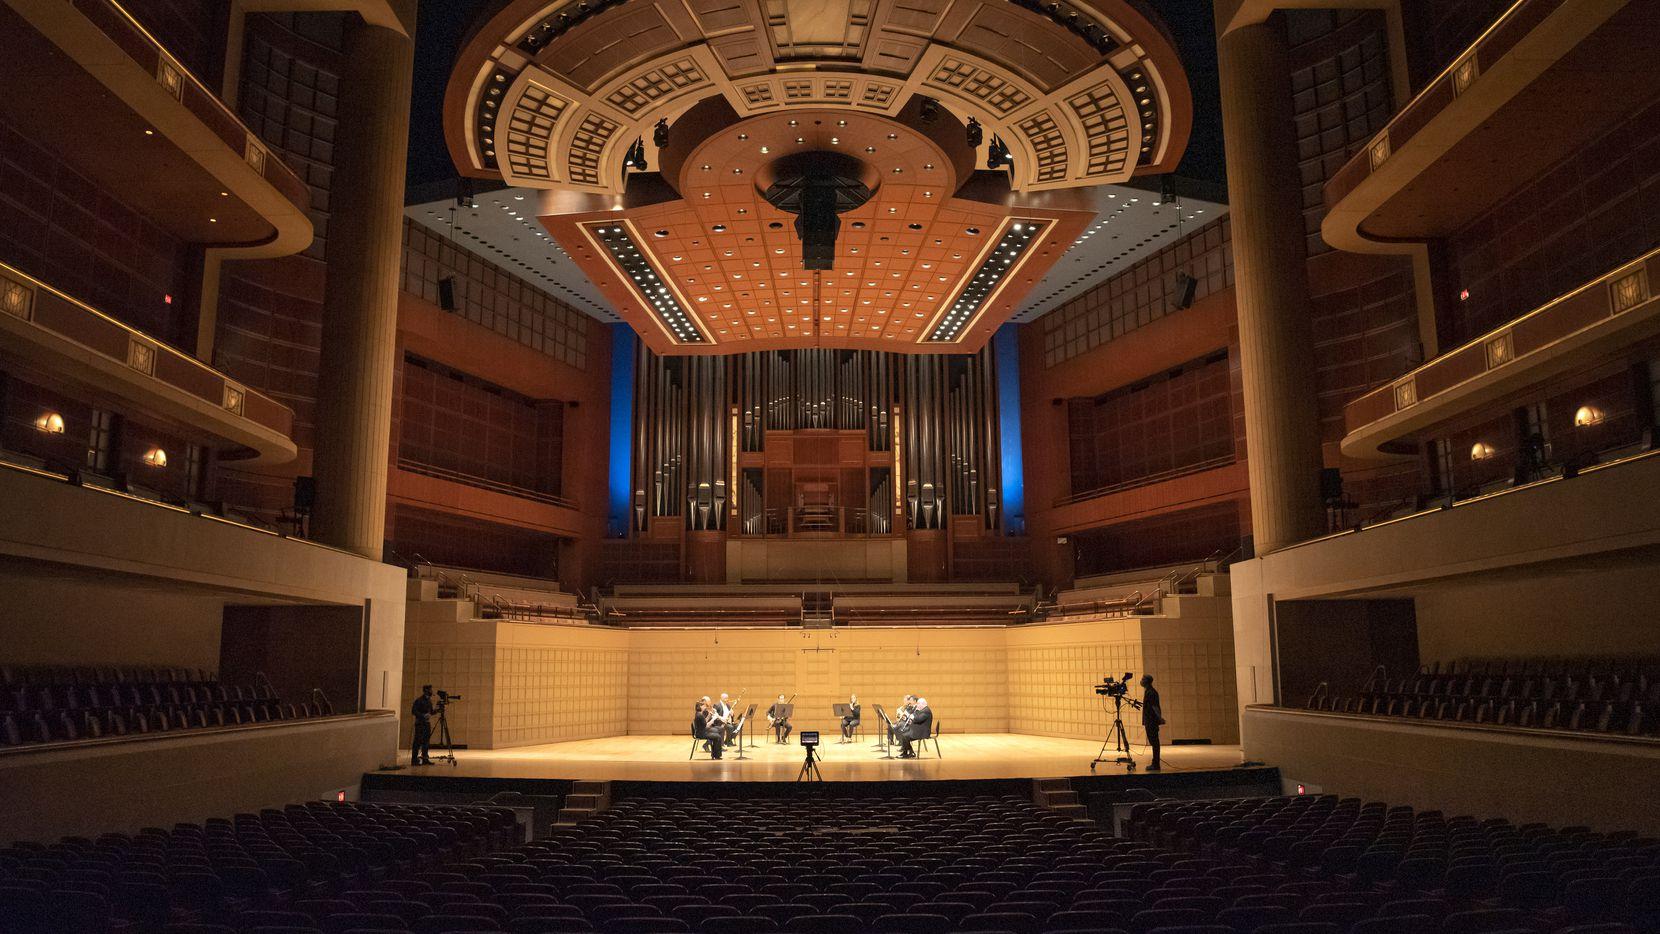 Camera operators, far-left and far-right, record the Dallas Symphony Orchestra performing Mozart Serenade in C minor, K. 388 for wind octet, part of their Summer Chamber Music, at the Morton H. Meyerson Symphony Center in Dallas on Saturday, June 13, 2020.